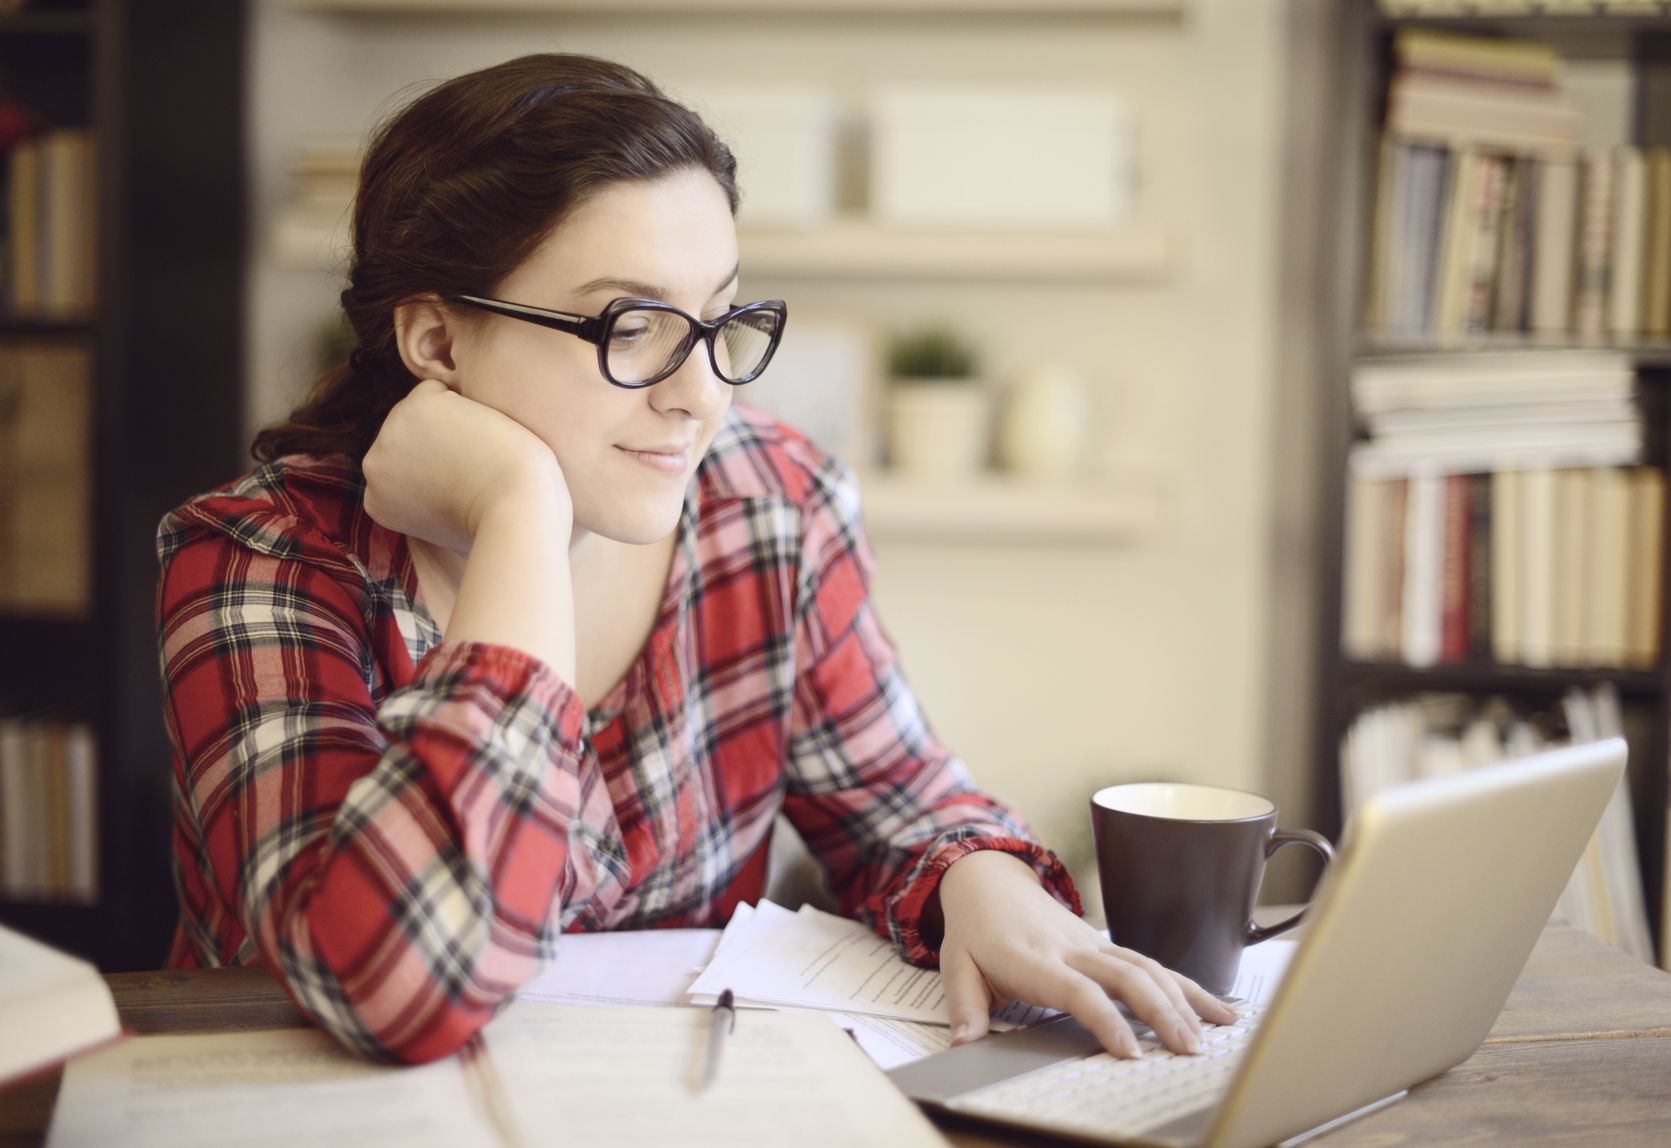 College Application Cover Letter Examples | LoveToKnow